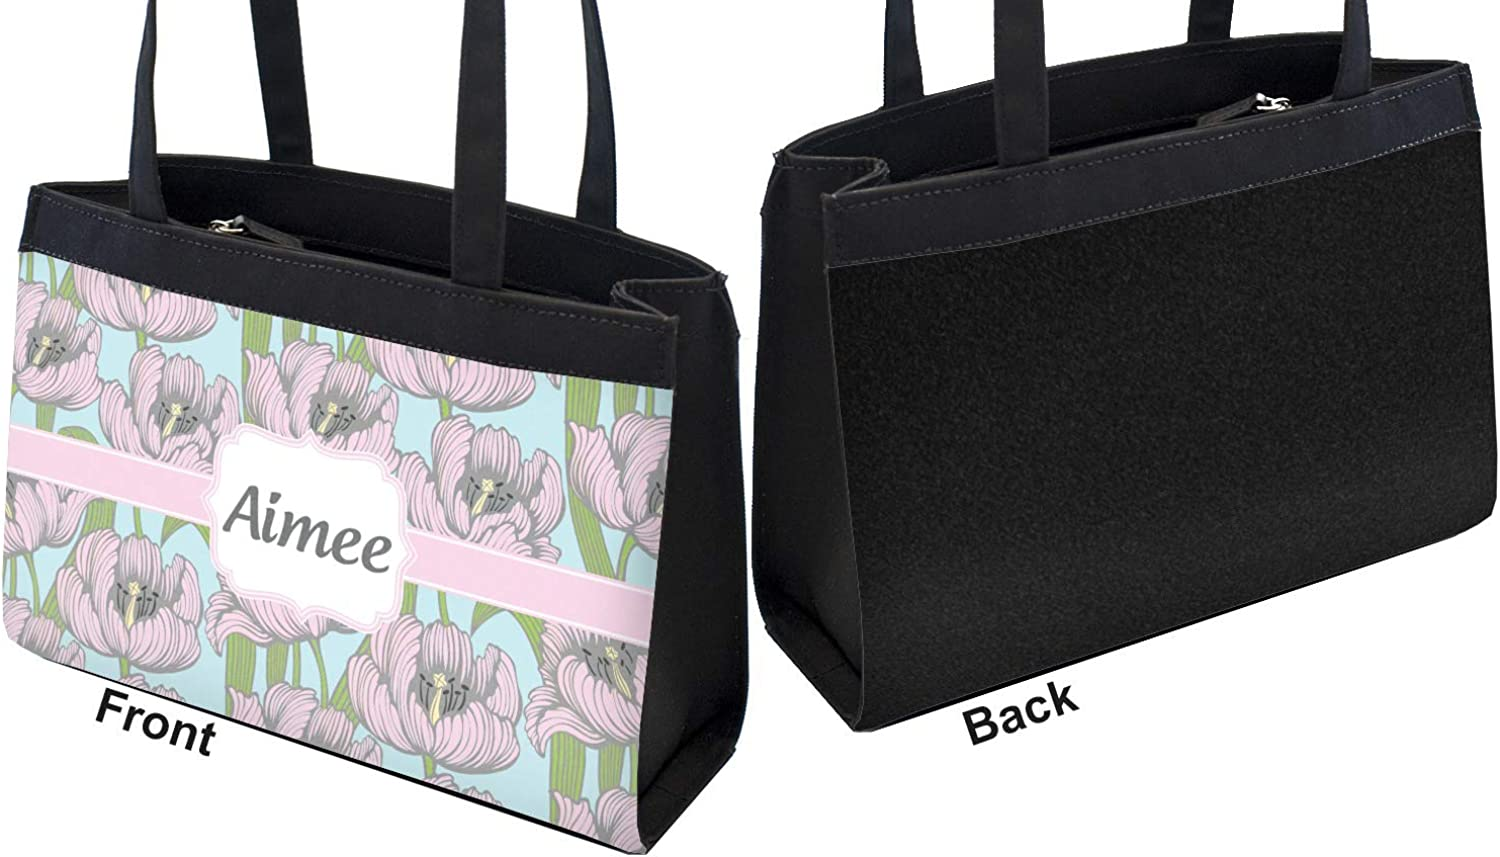 Front Wild Tulips Zippered Everyday Tote Personalized